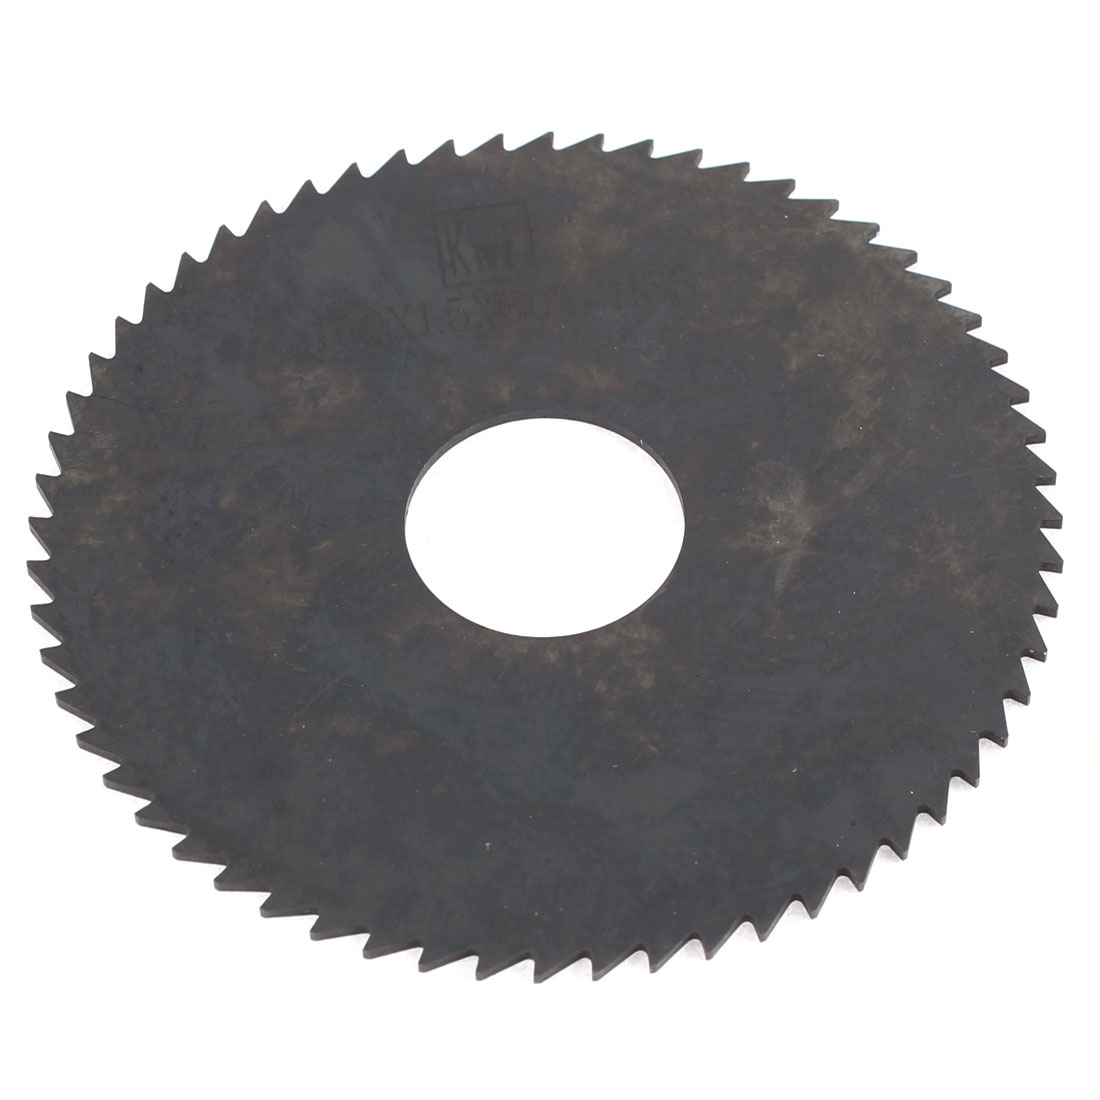 100mm x 1.5mm x 27mm 60T Milling Slitting Slotting Saw Mill Cutter